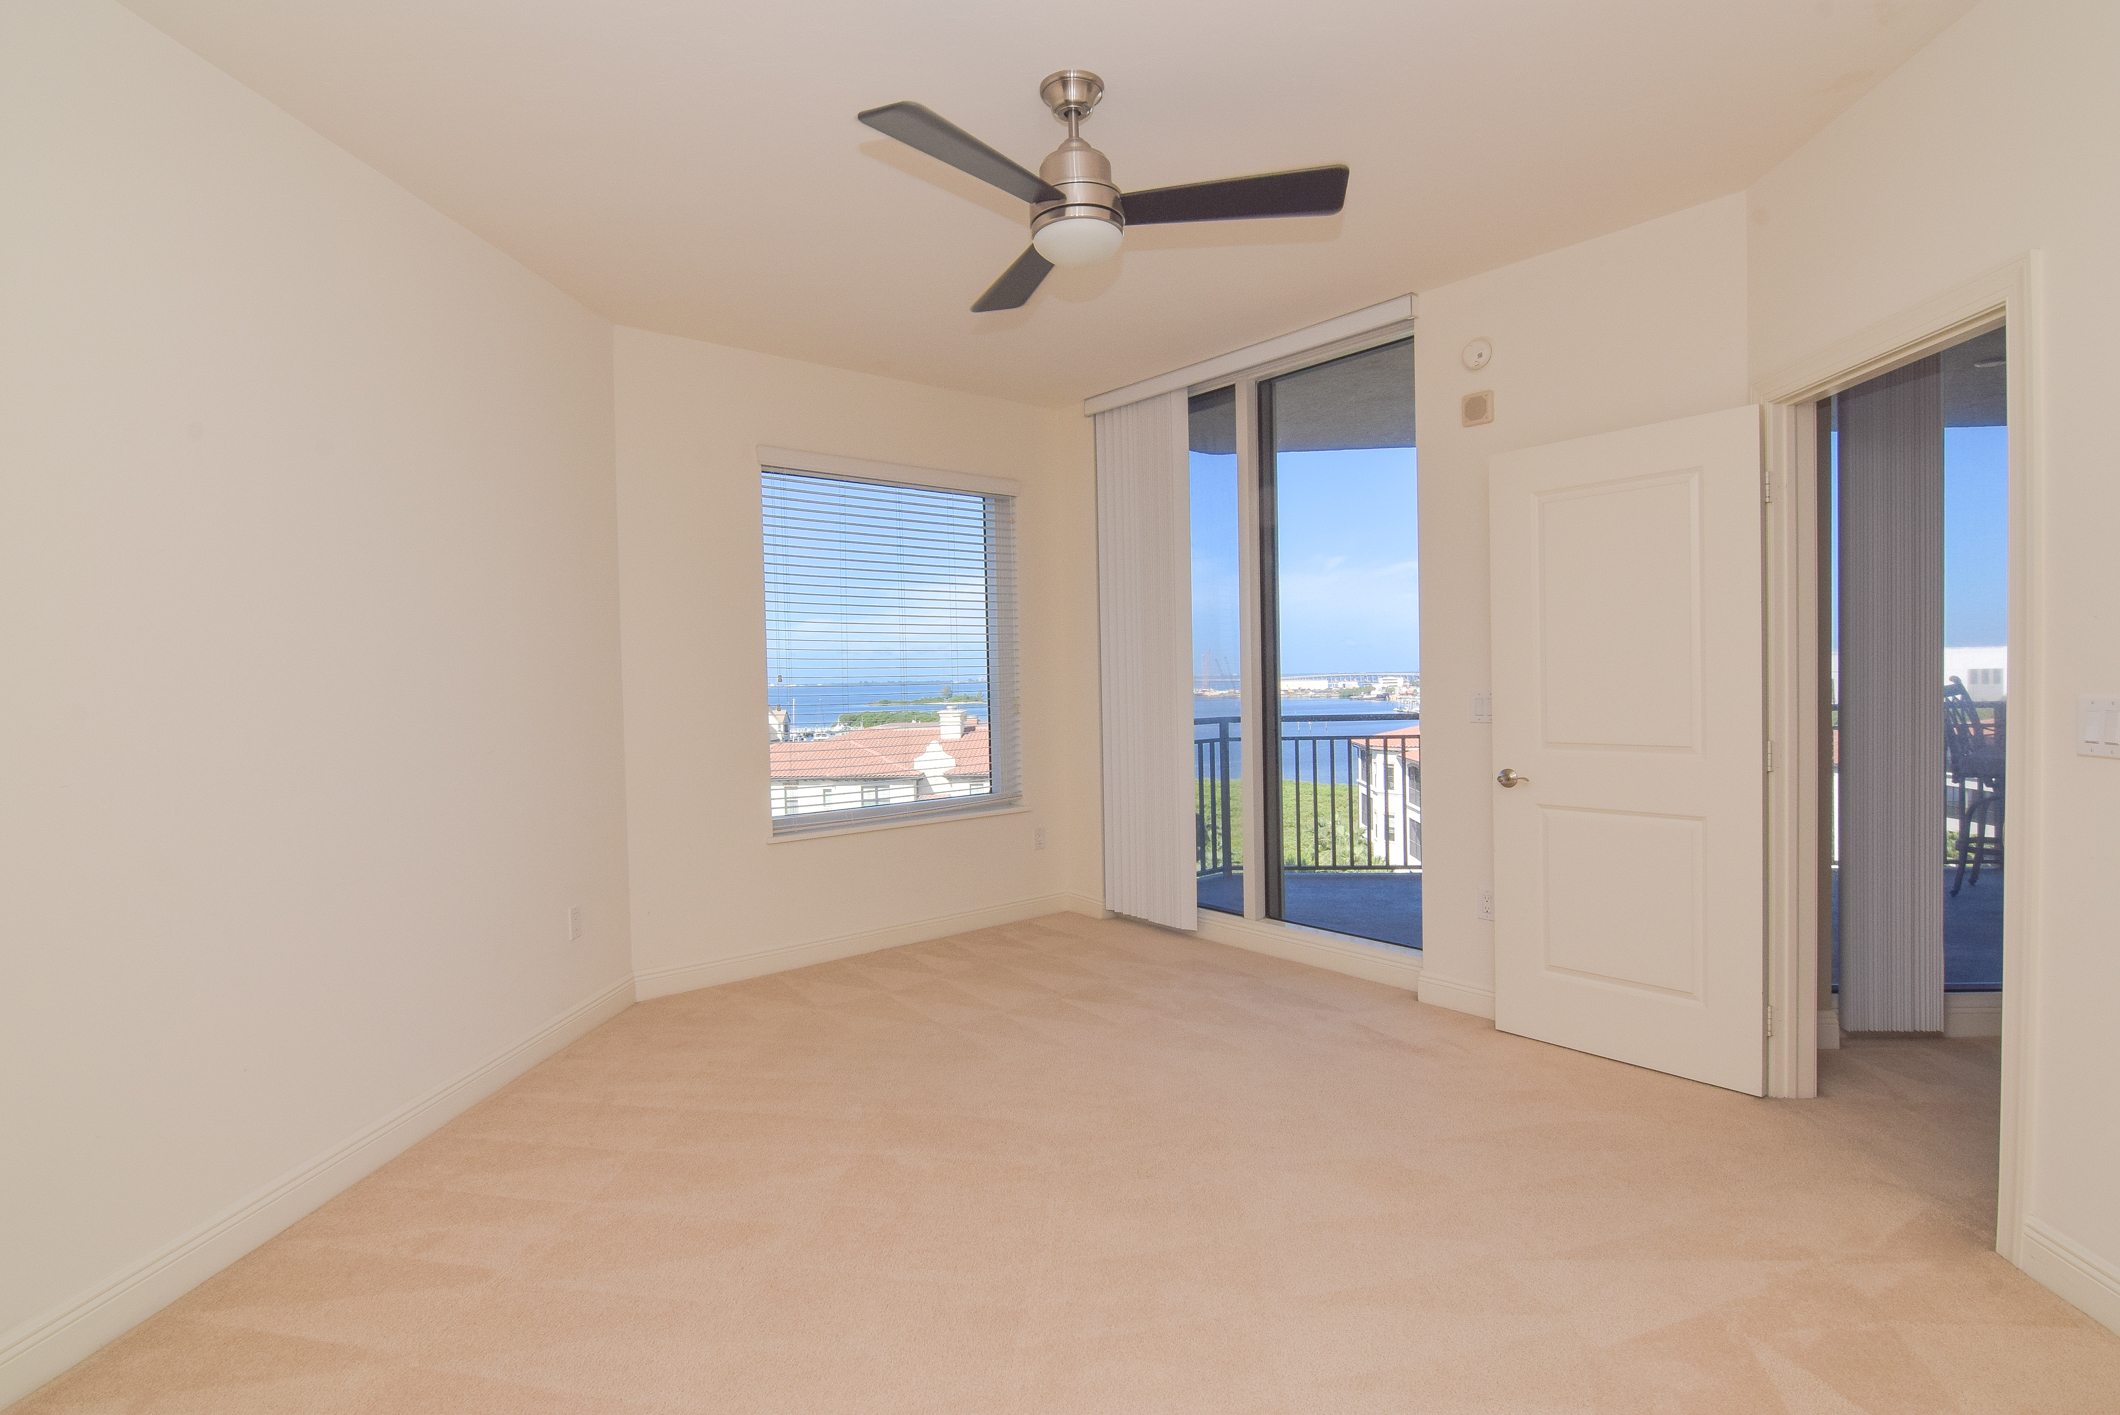 2nd Bedroom with Balcony Access & Water Views